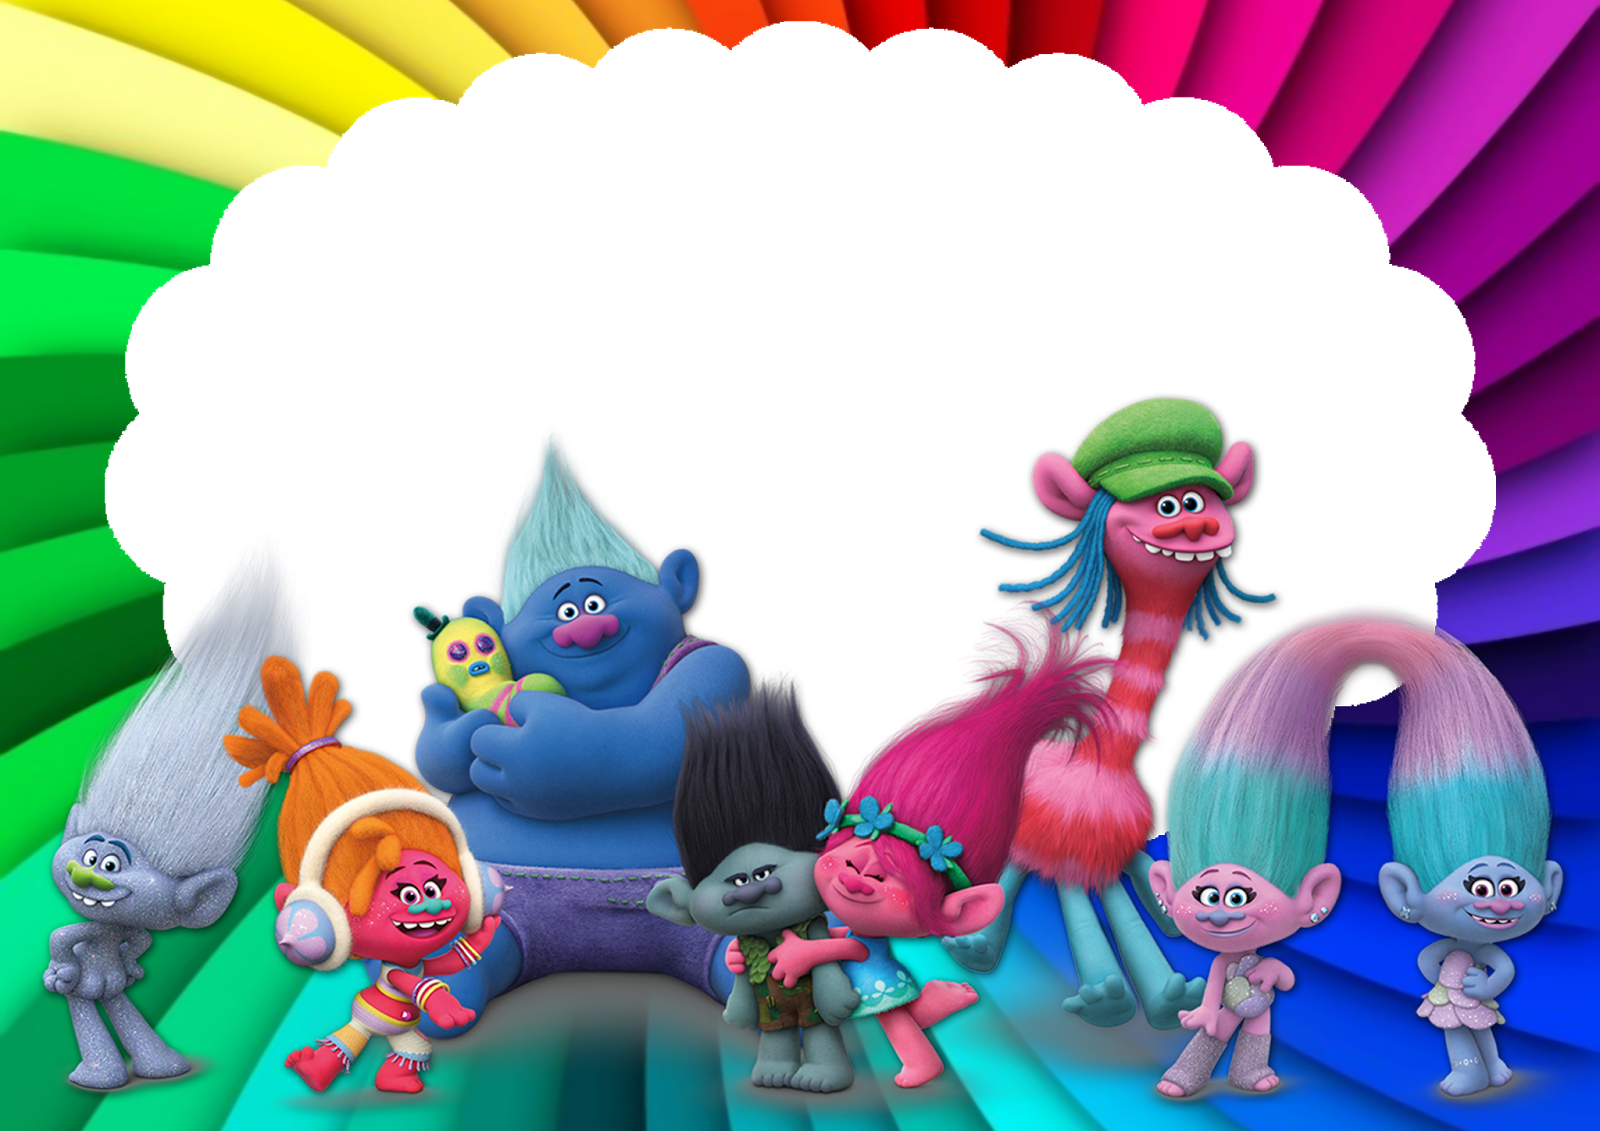 Download Trolls Convite PNG Image with No Background.